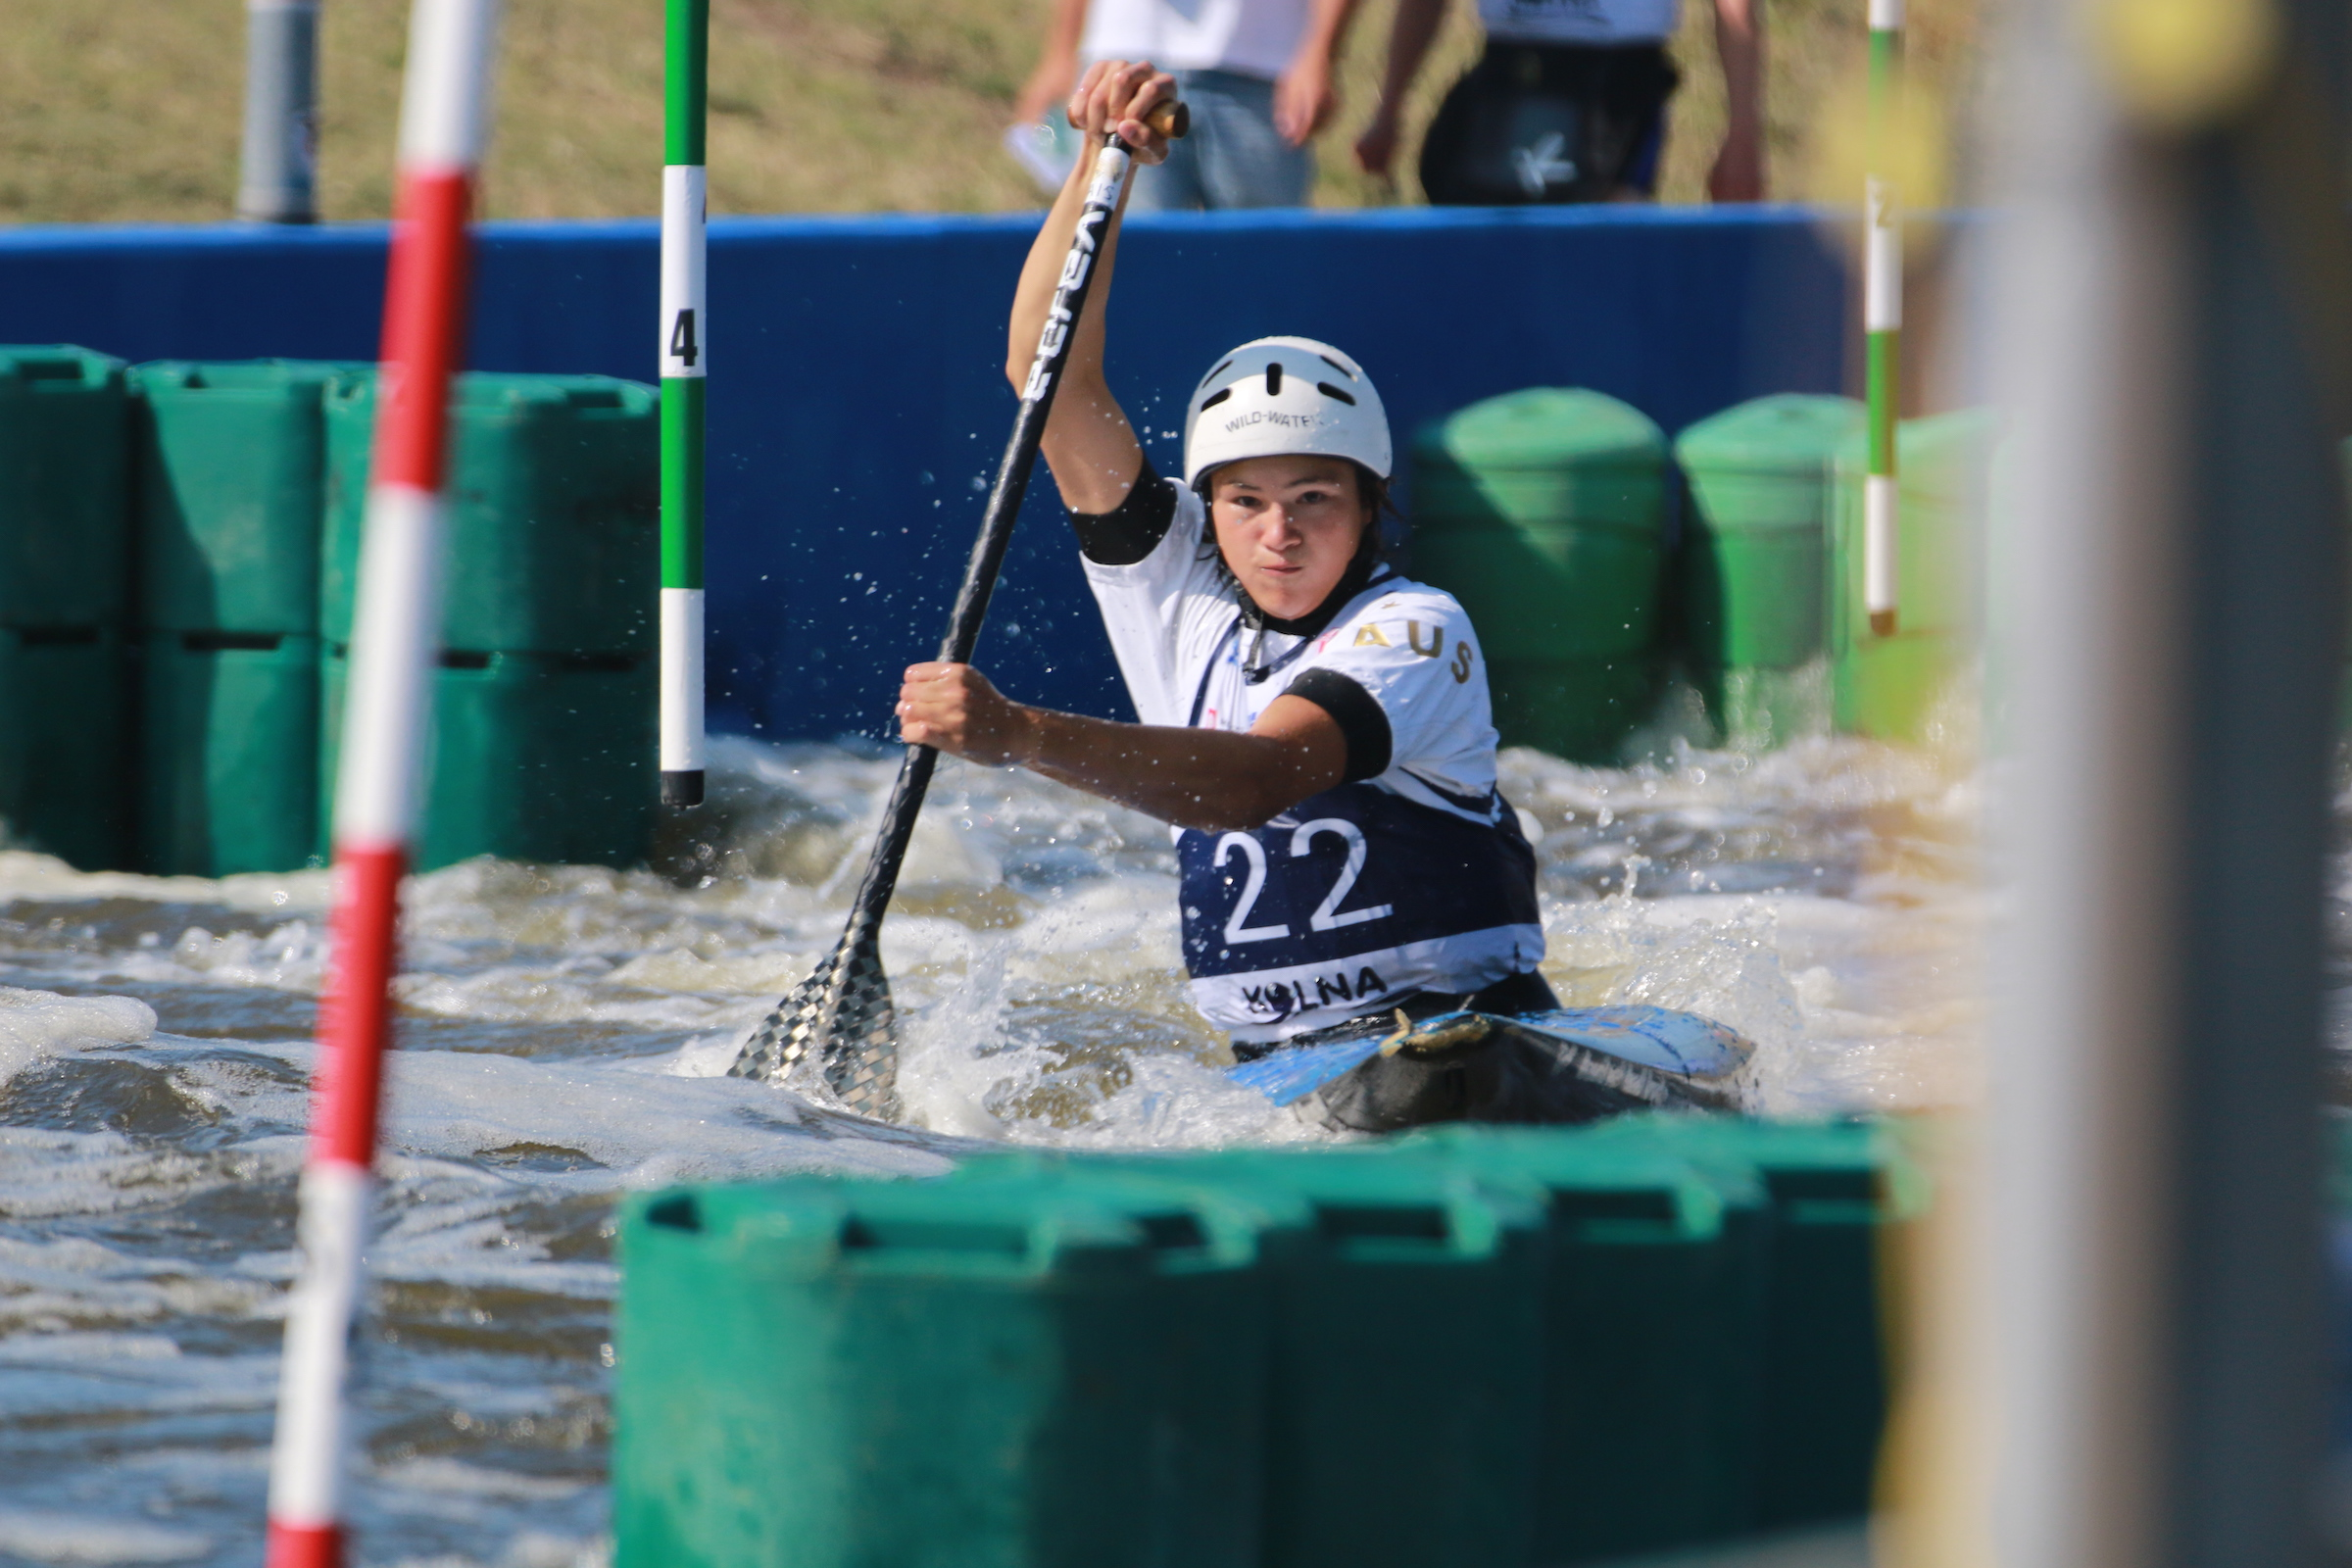 Australia's Junior Paddlers Advance Through To Next Round of Racing